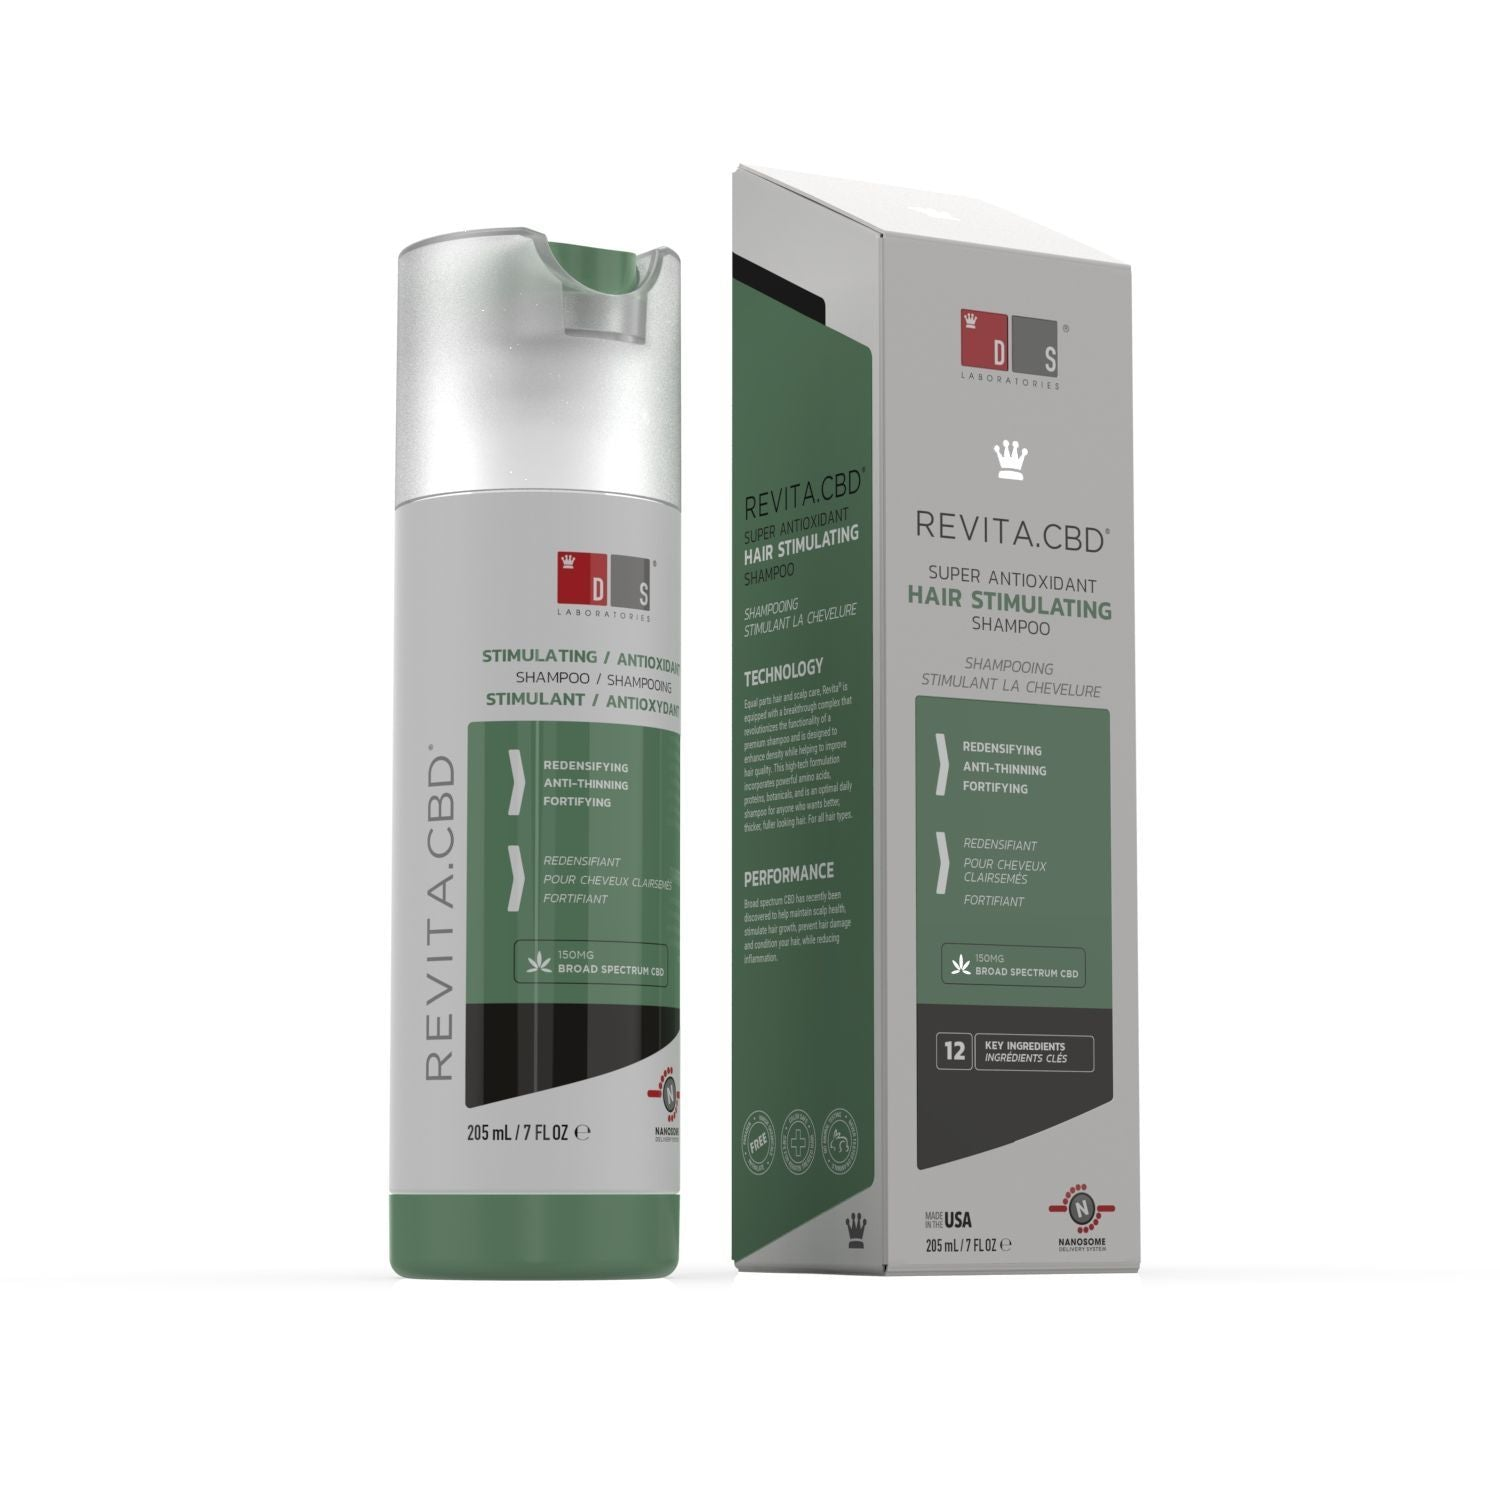 Revita.CBD | Super Antioxidant Hair Stimulating CBD Shampoo